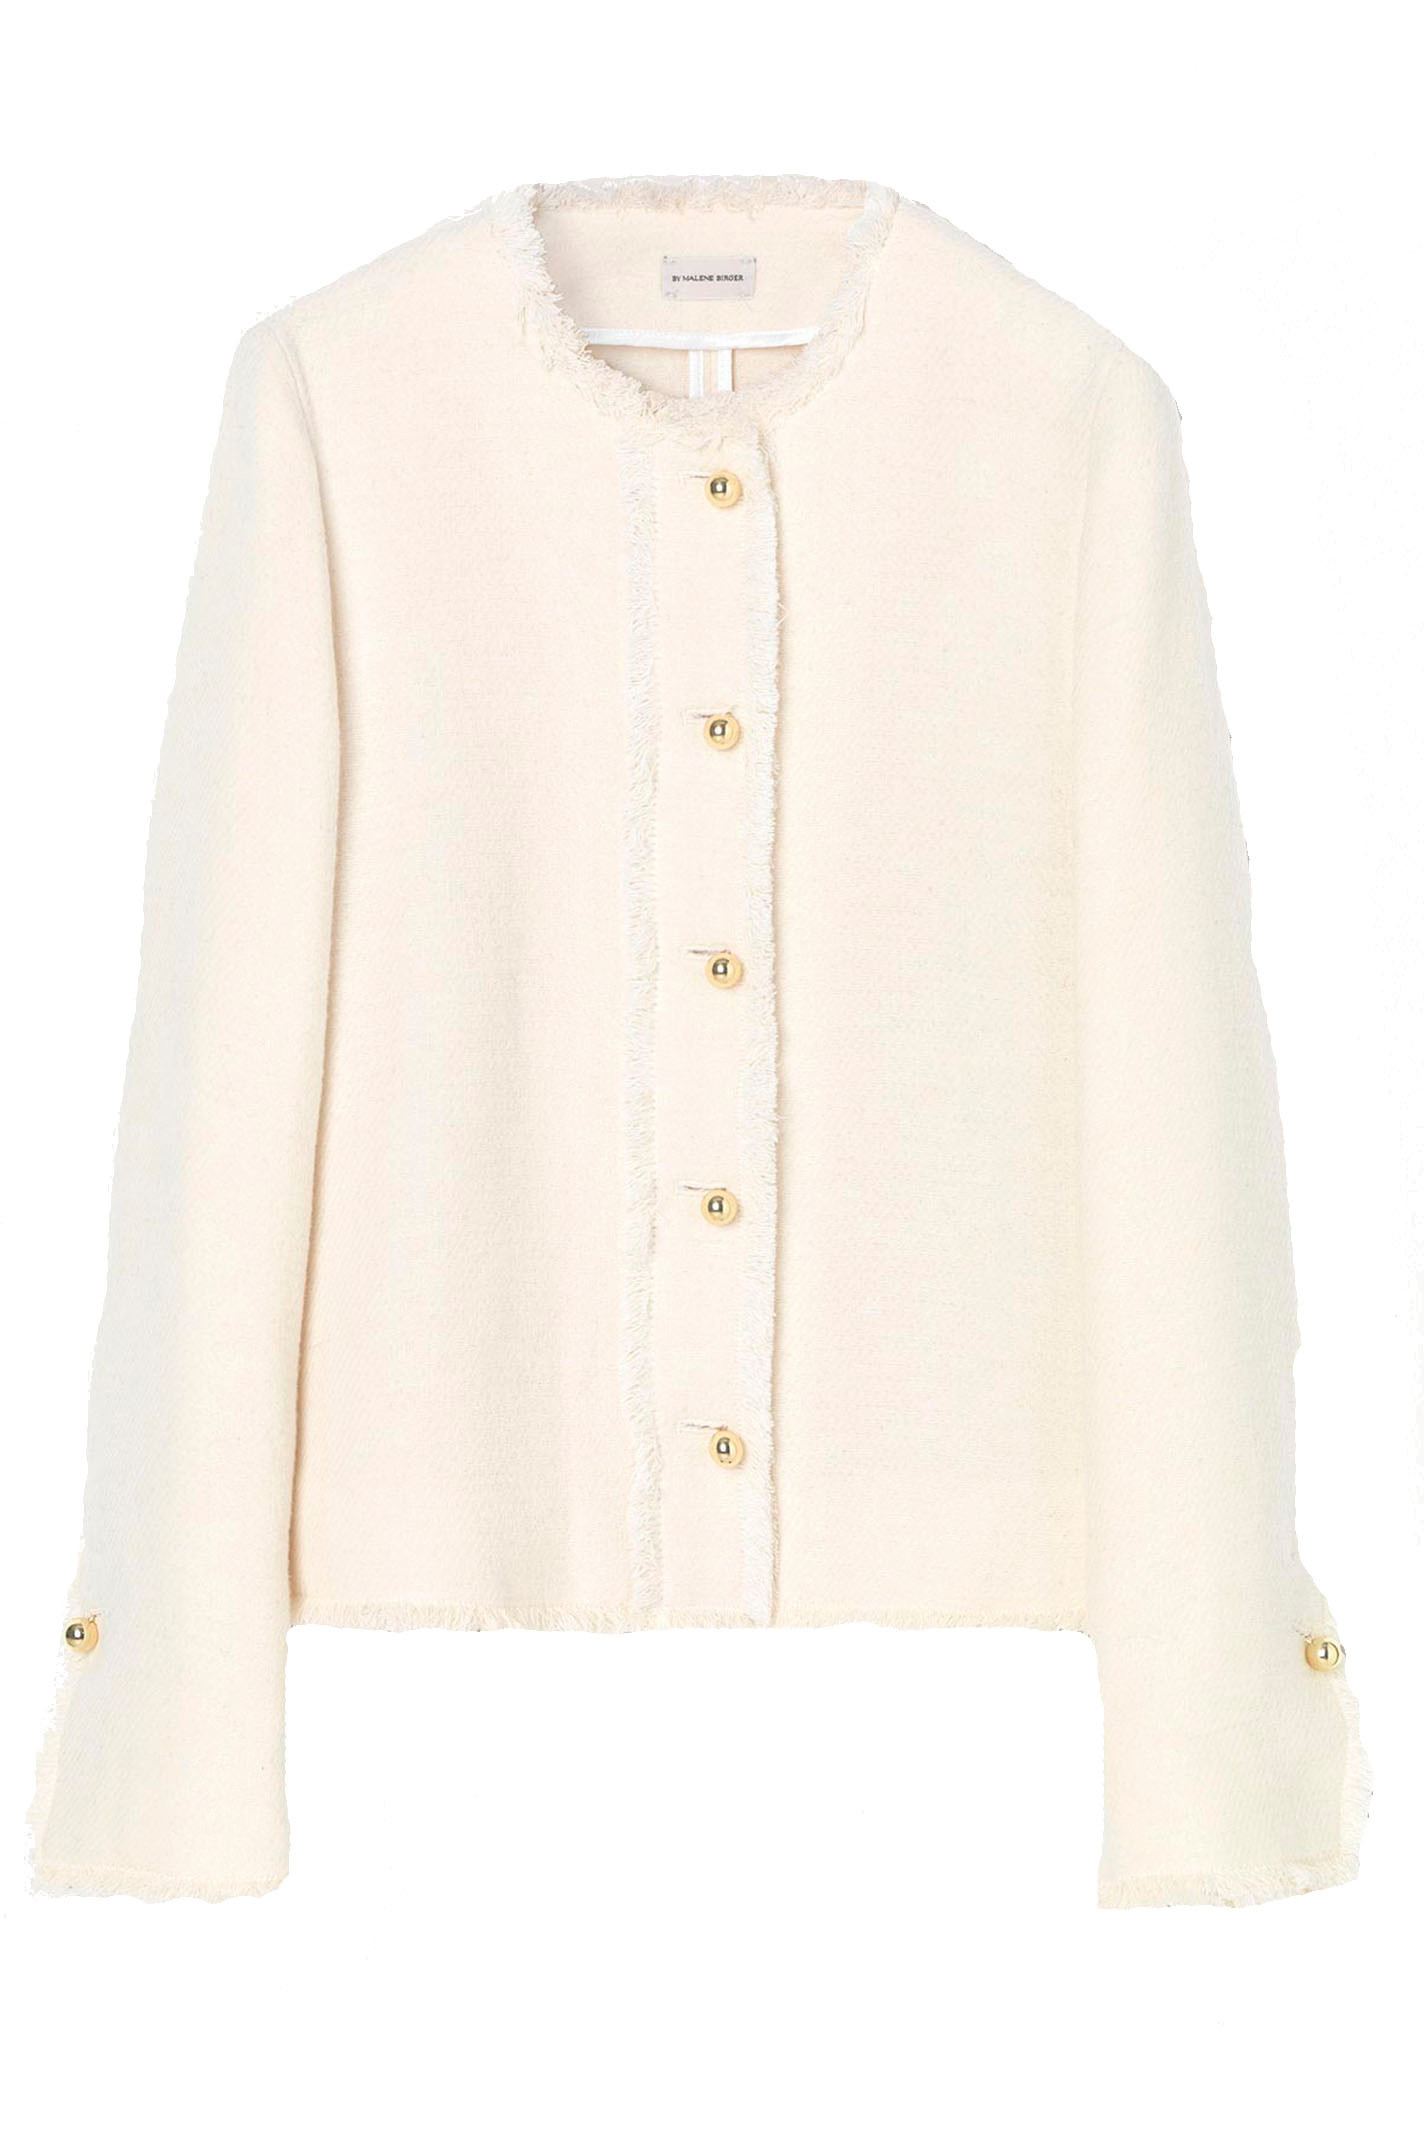 By Malene Birger MALIN Q67382005 CREAM